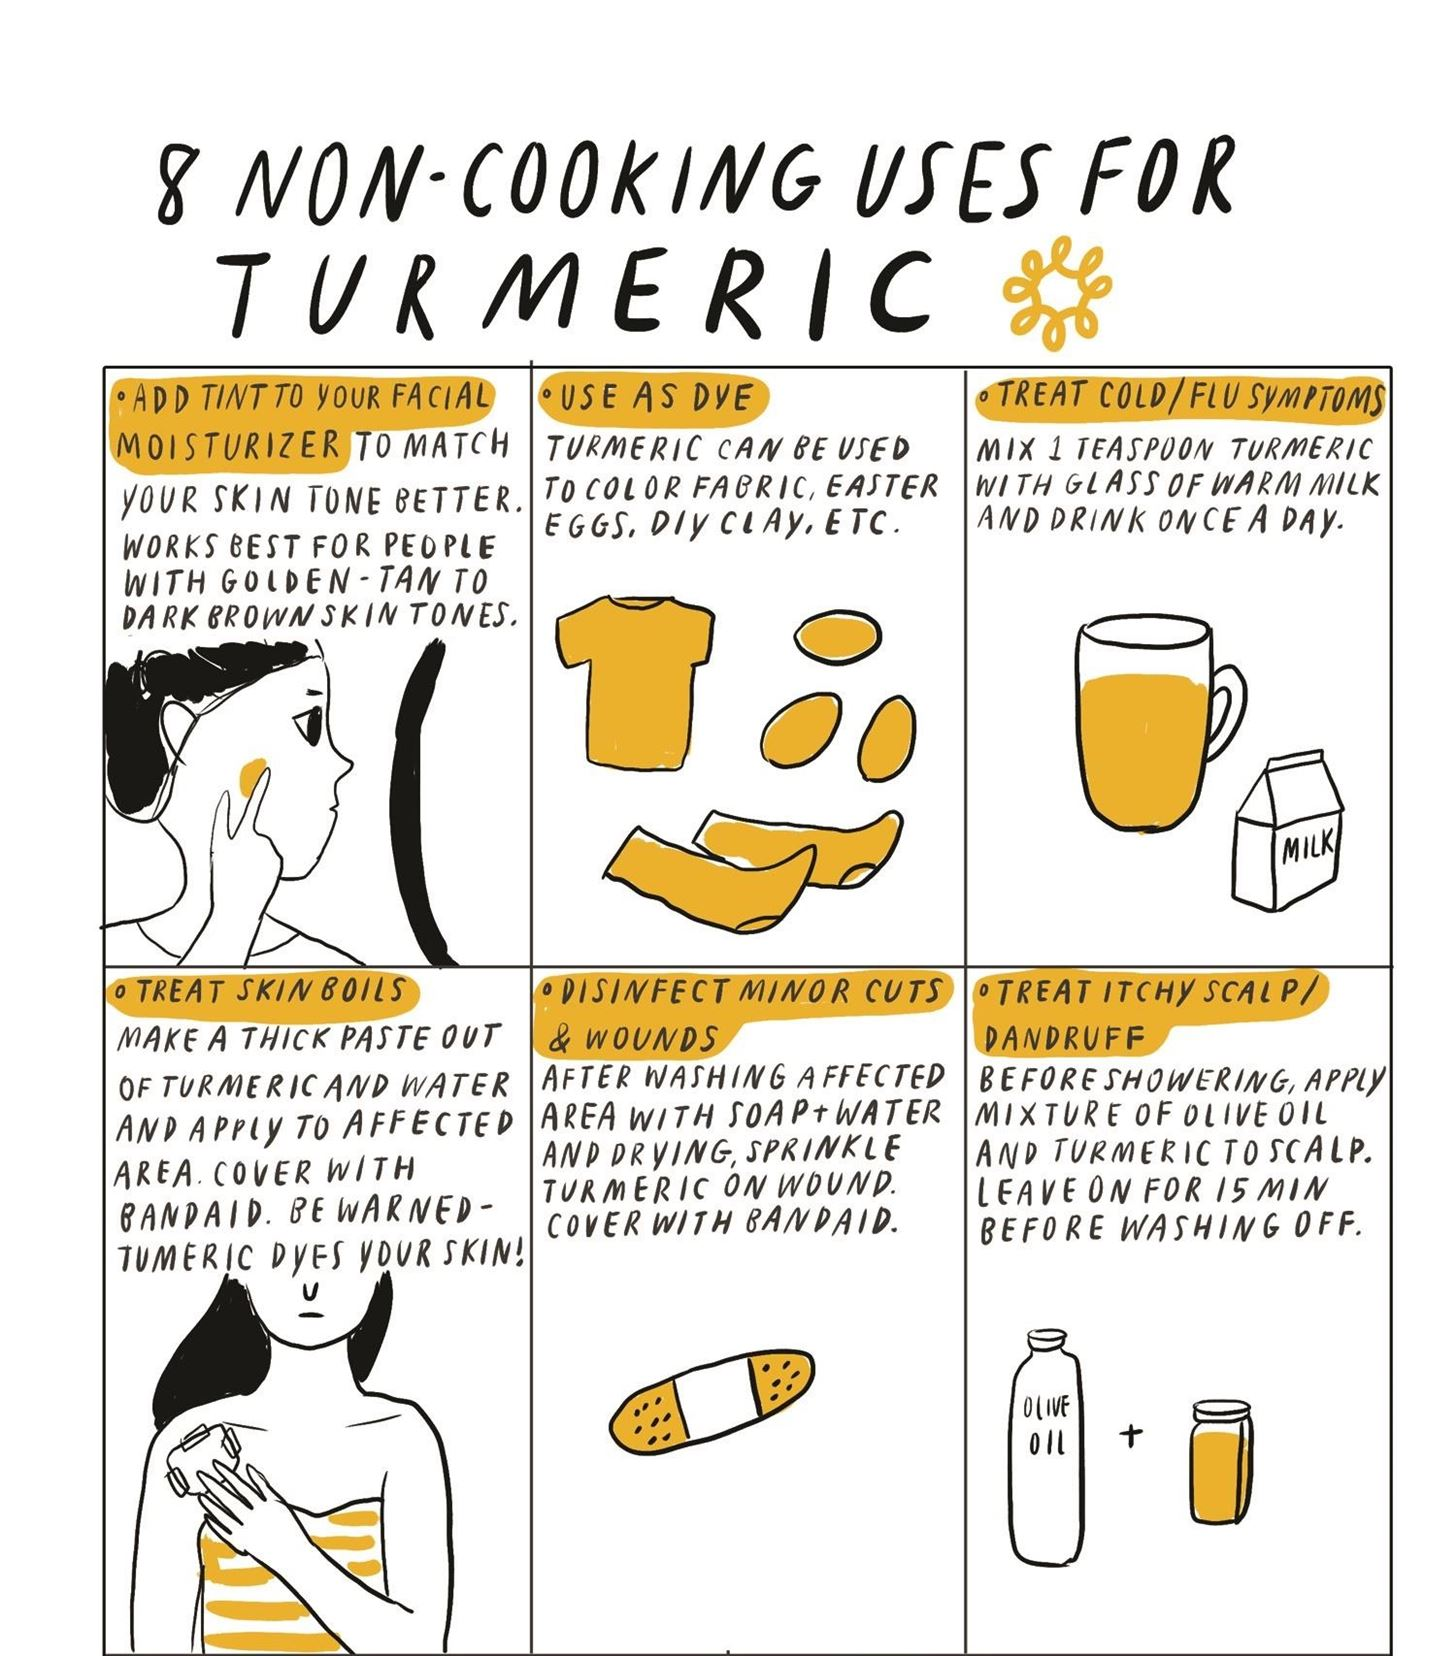 8 Non Cooking Uses For Turmeric 171 The Secret Yumiverse